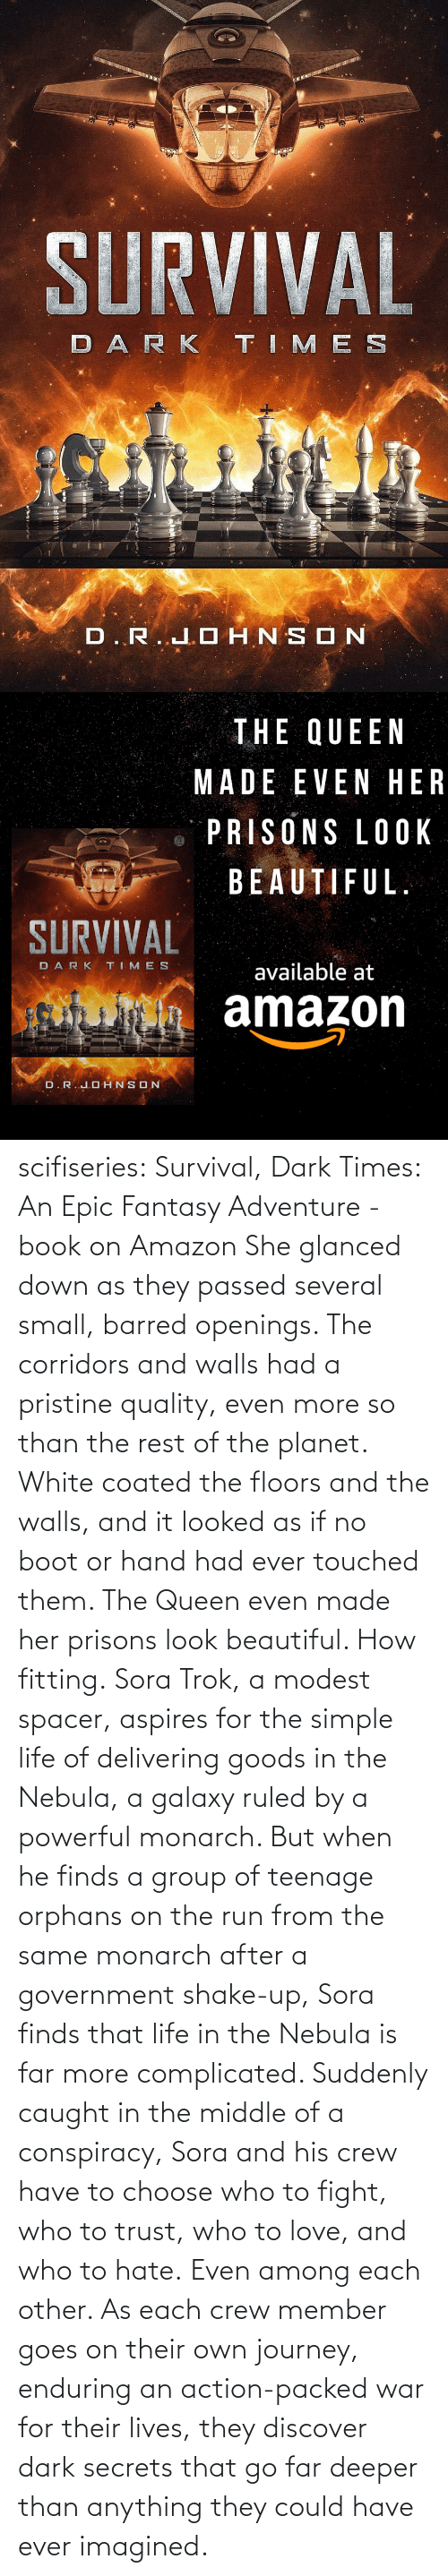 her: scifiseries: Survival, Dark Times: An Epic Fantasy Adventure - book on Amazon  She glanced down as they  passed several small, barred openings. The corridors and walls had a  pristine quality, even more so than the rest of the planet. White coated  the floors and the walls, and it looked as if no boot or hand had ever  touched them.  The Queen even made her prisons look beautiful.  How fitting. Sora  Trok, a modest spacer, aspires for the simple life of delivering goods  in the Nebula, a galaxy ruled by a powerful monarch. But when he finds a  group of teenage orphans on the run from the same monarch after a  government shake-up, Sora finds that life in the Nebula is far more complicated.  Suddenly  caught in the middle of a conspiracy, Sora and his crew have to choose  who to fight, who to trust, who to love, and who to hate. Even among each other.  As  each crew member goes on their own journey, enduring an action-packed  war for their lives, they discover dark secrets that go far deeper than  anything they could have ever imagined.